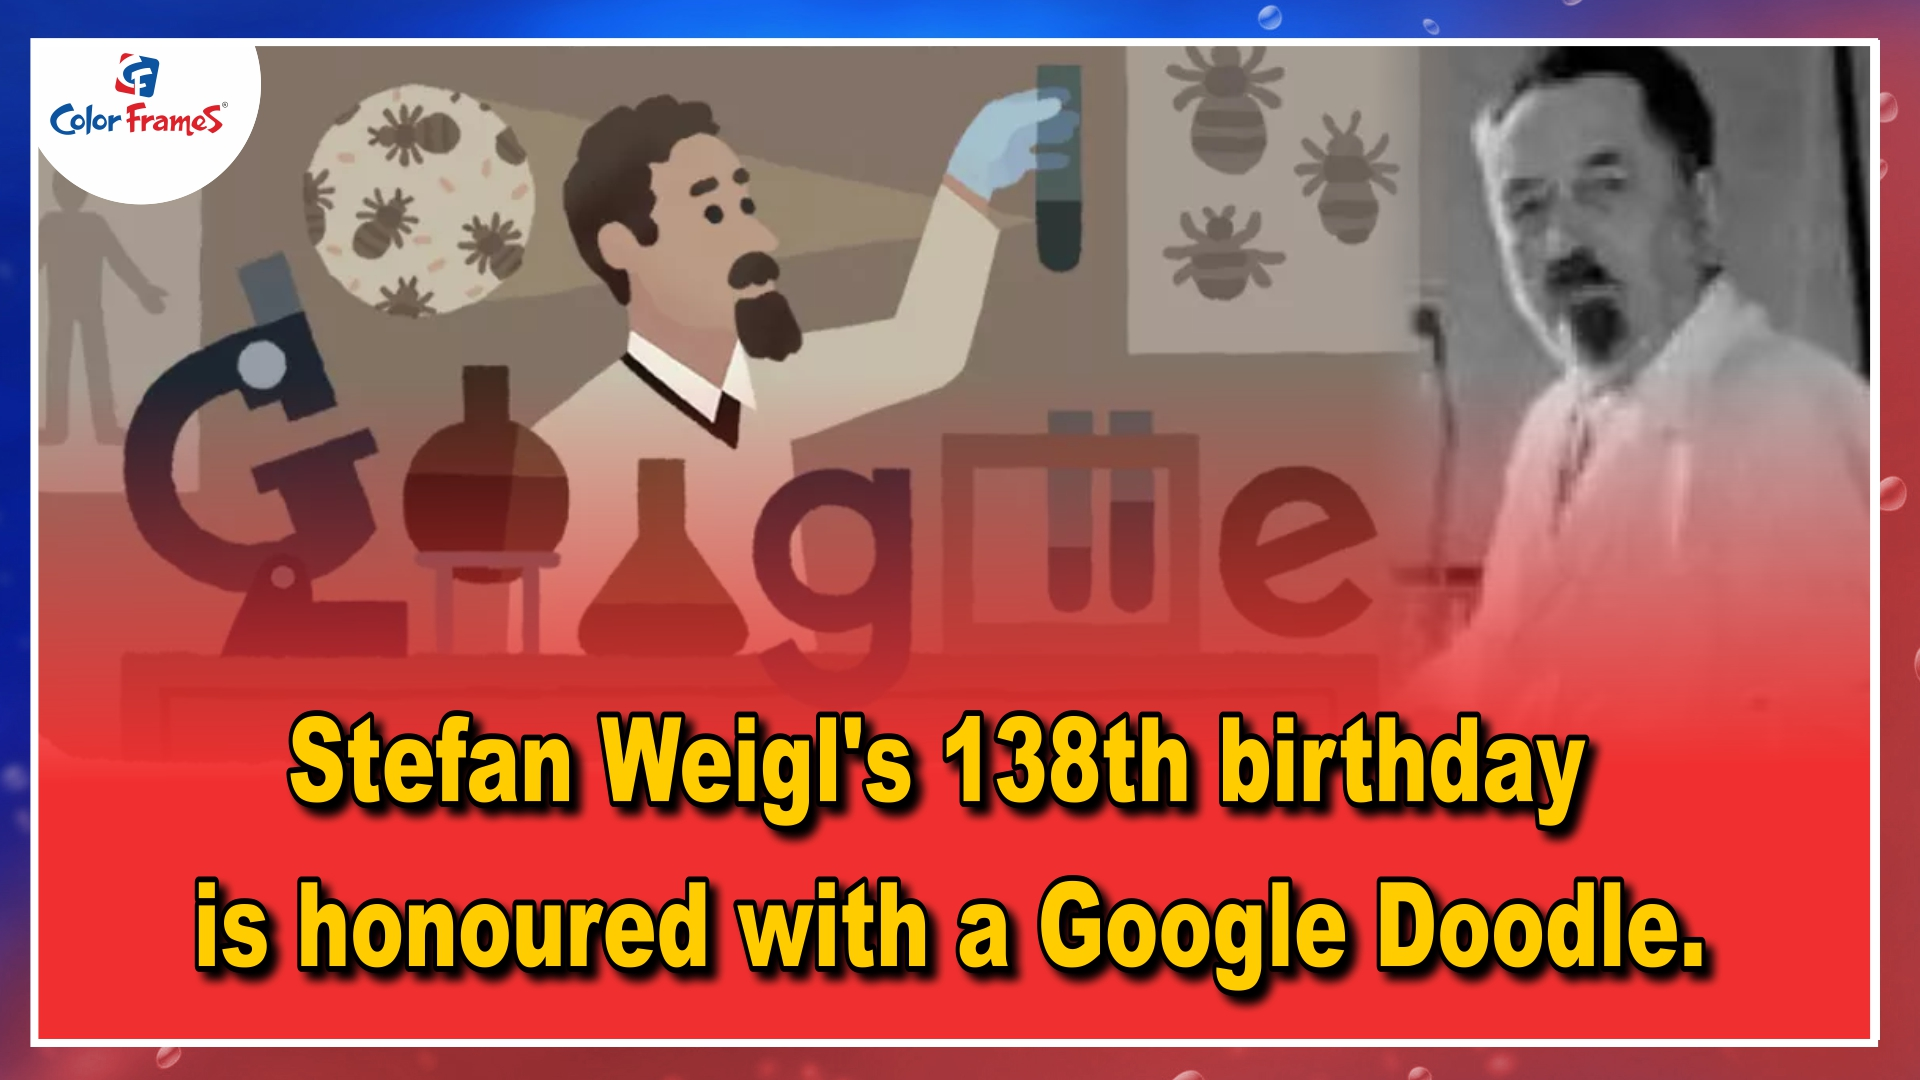 Stefan Weigl's 138th birthday is honoured with a Google Doodle.